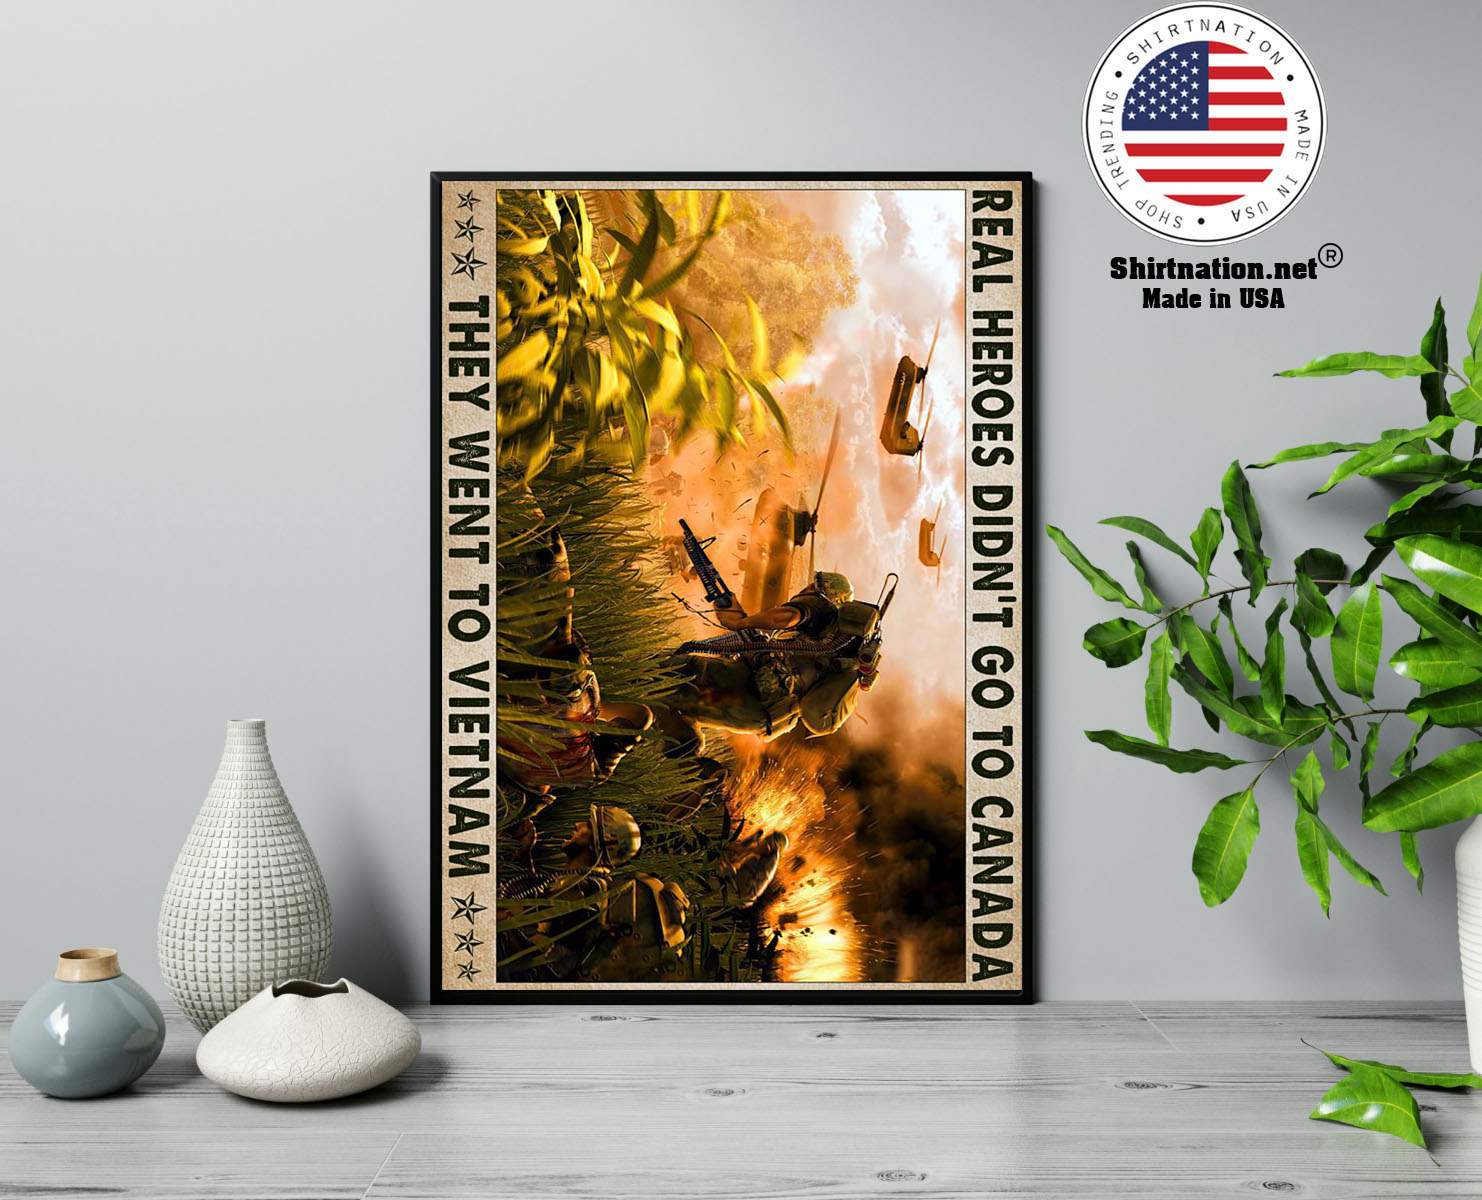 Real heroes didnt go to canada they went to Vietnam poster 13